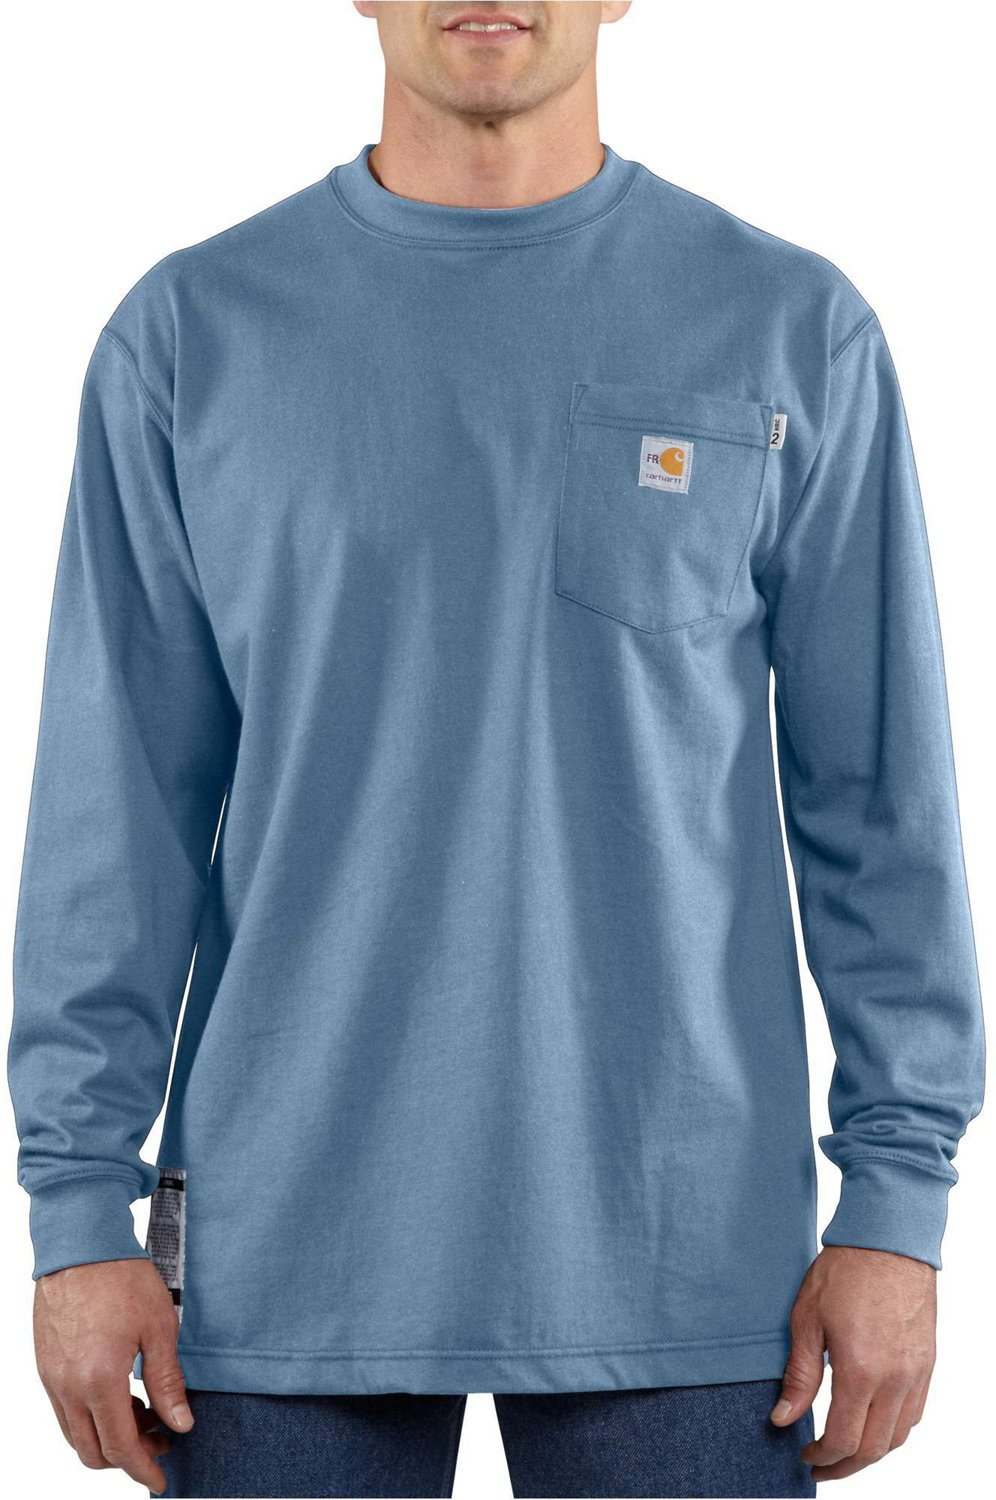 6eade9fbdfe4 Display product reviews for Carhartt Men s Work Dry Flame Resistant Long  Sleeve T-shirt